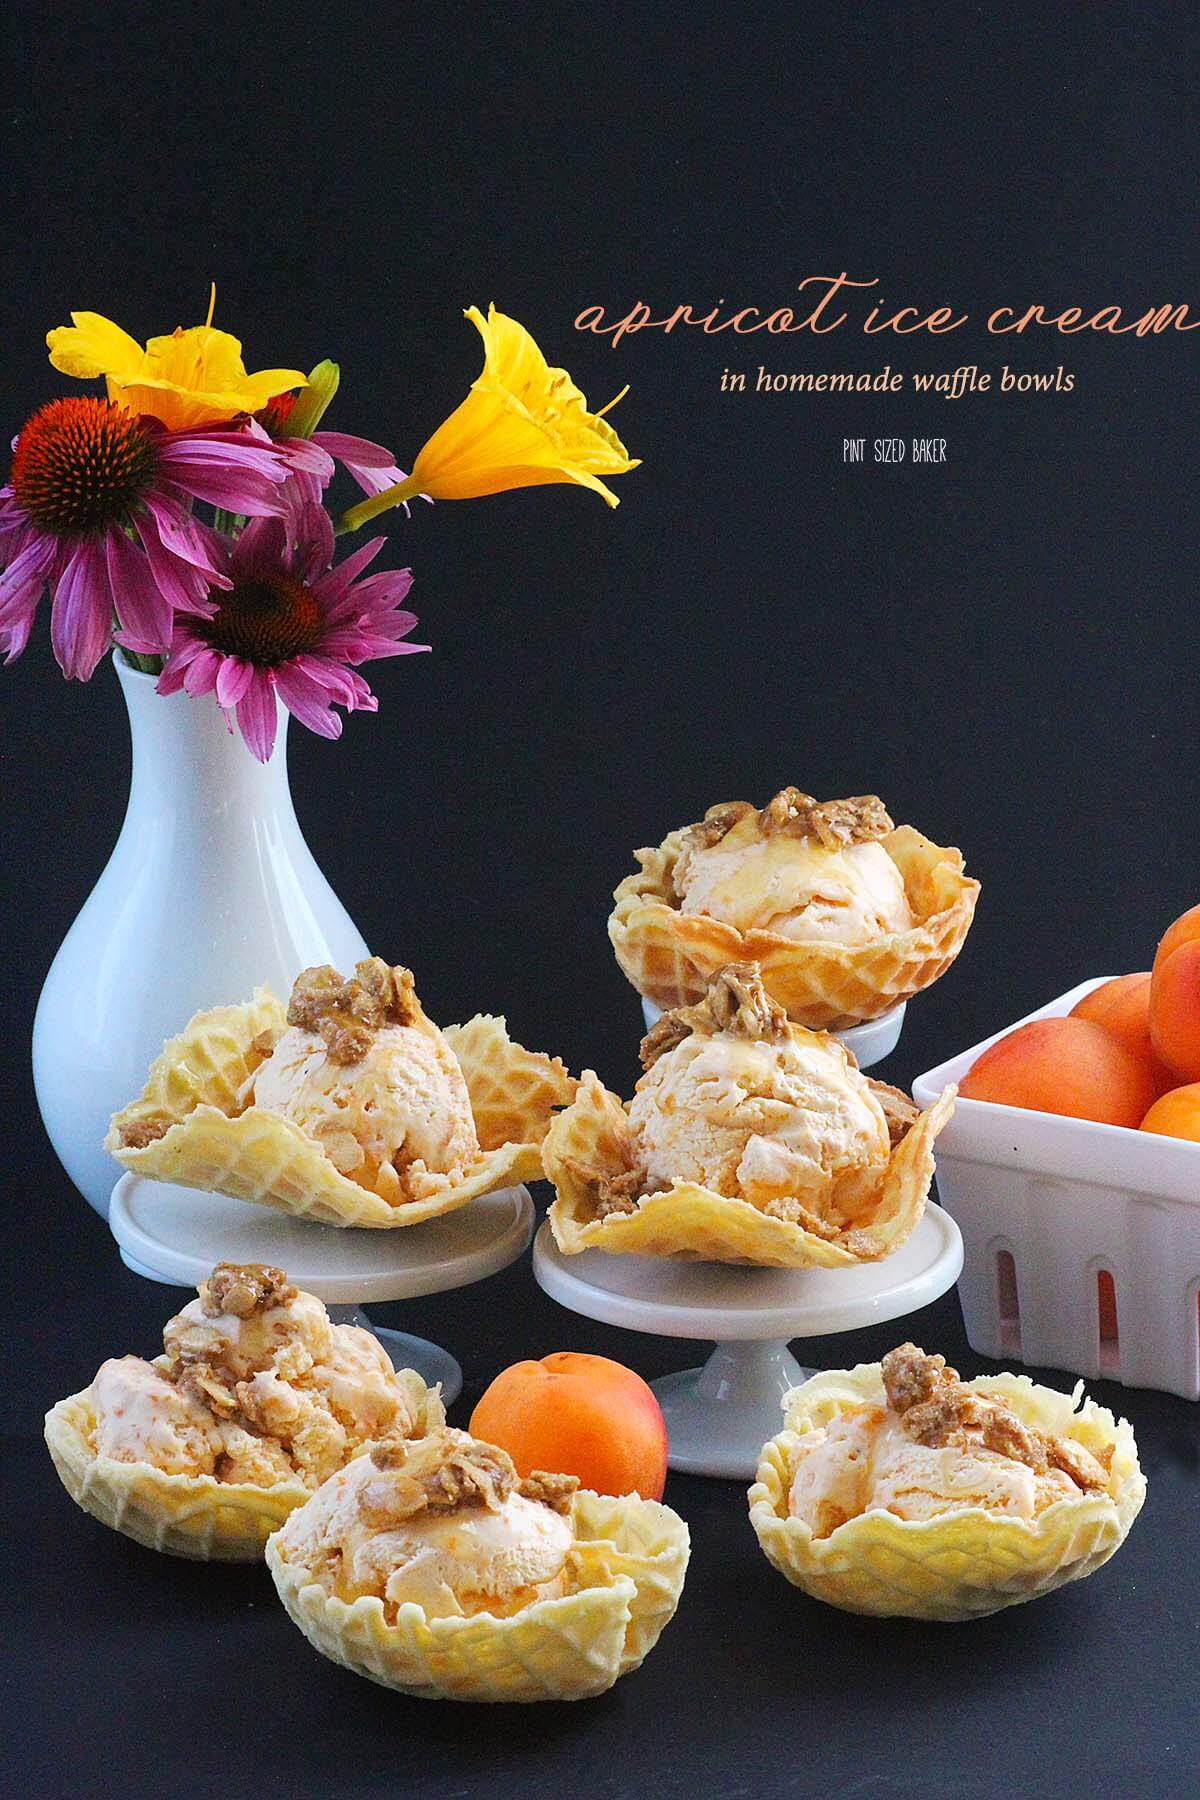 Homemade Waffle Bowls filled with tart apricot and creme fraiche ice cream and sweetened with brown sugar almonds and honey. The perfect adult indulgence.